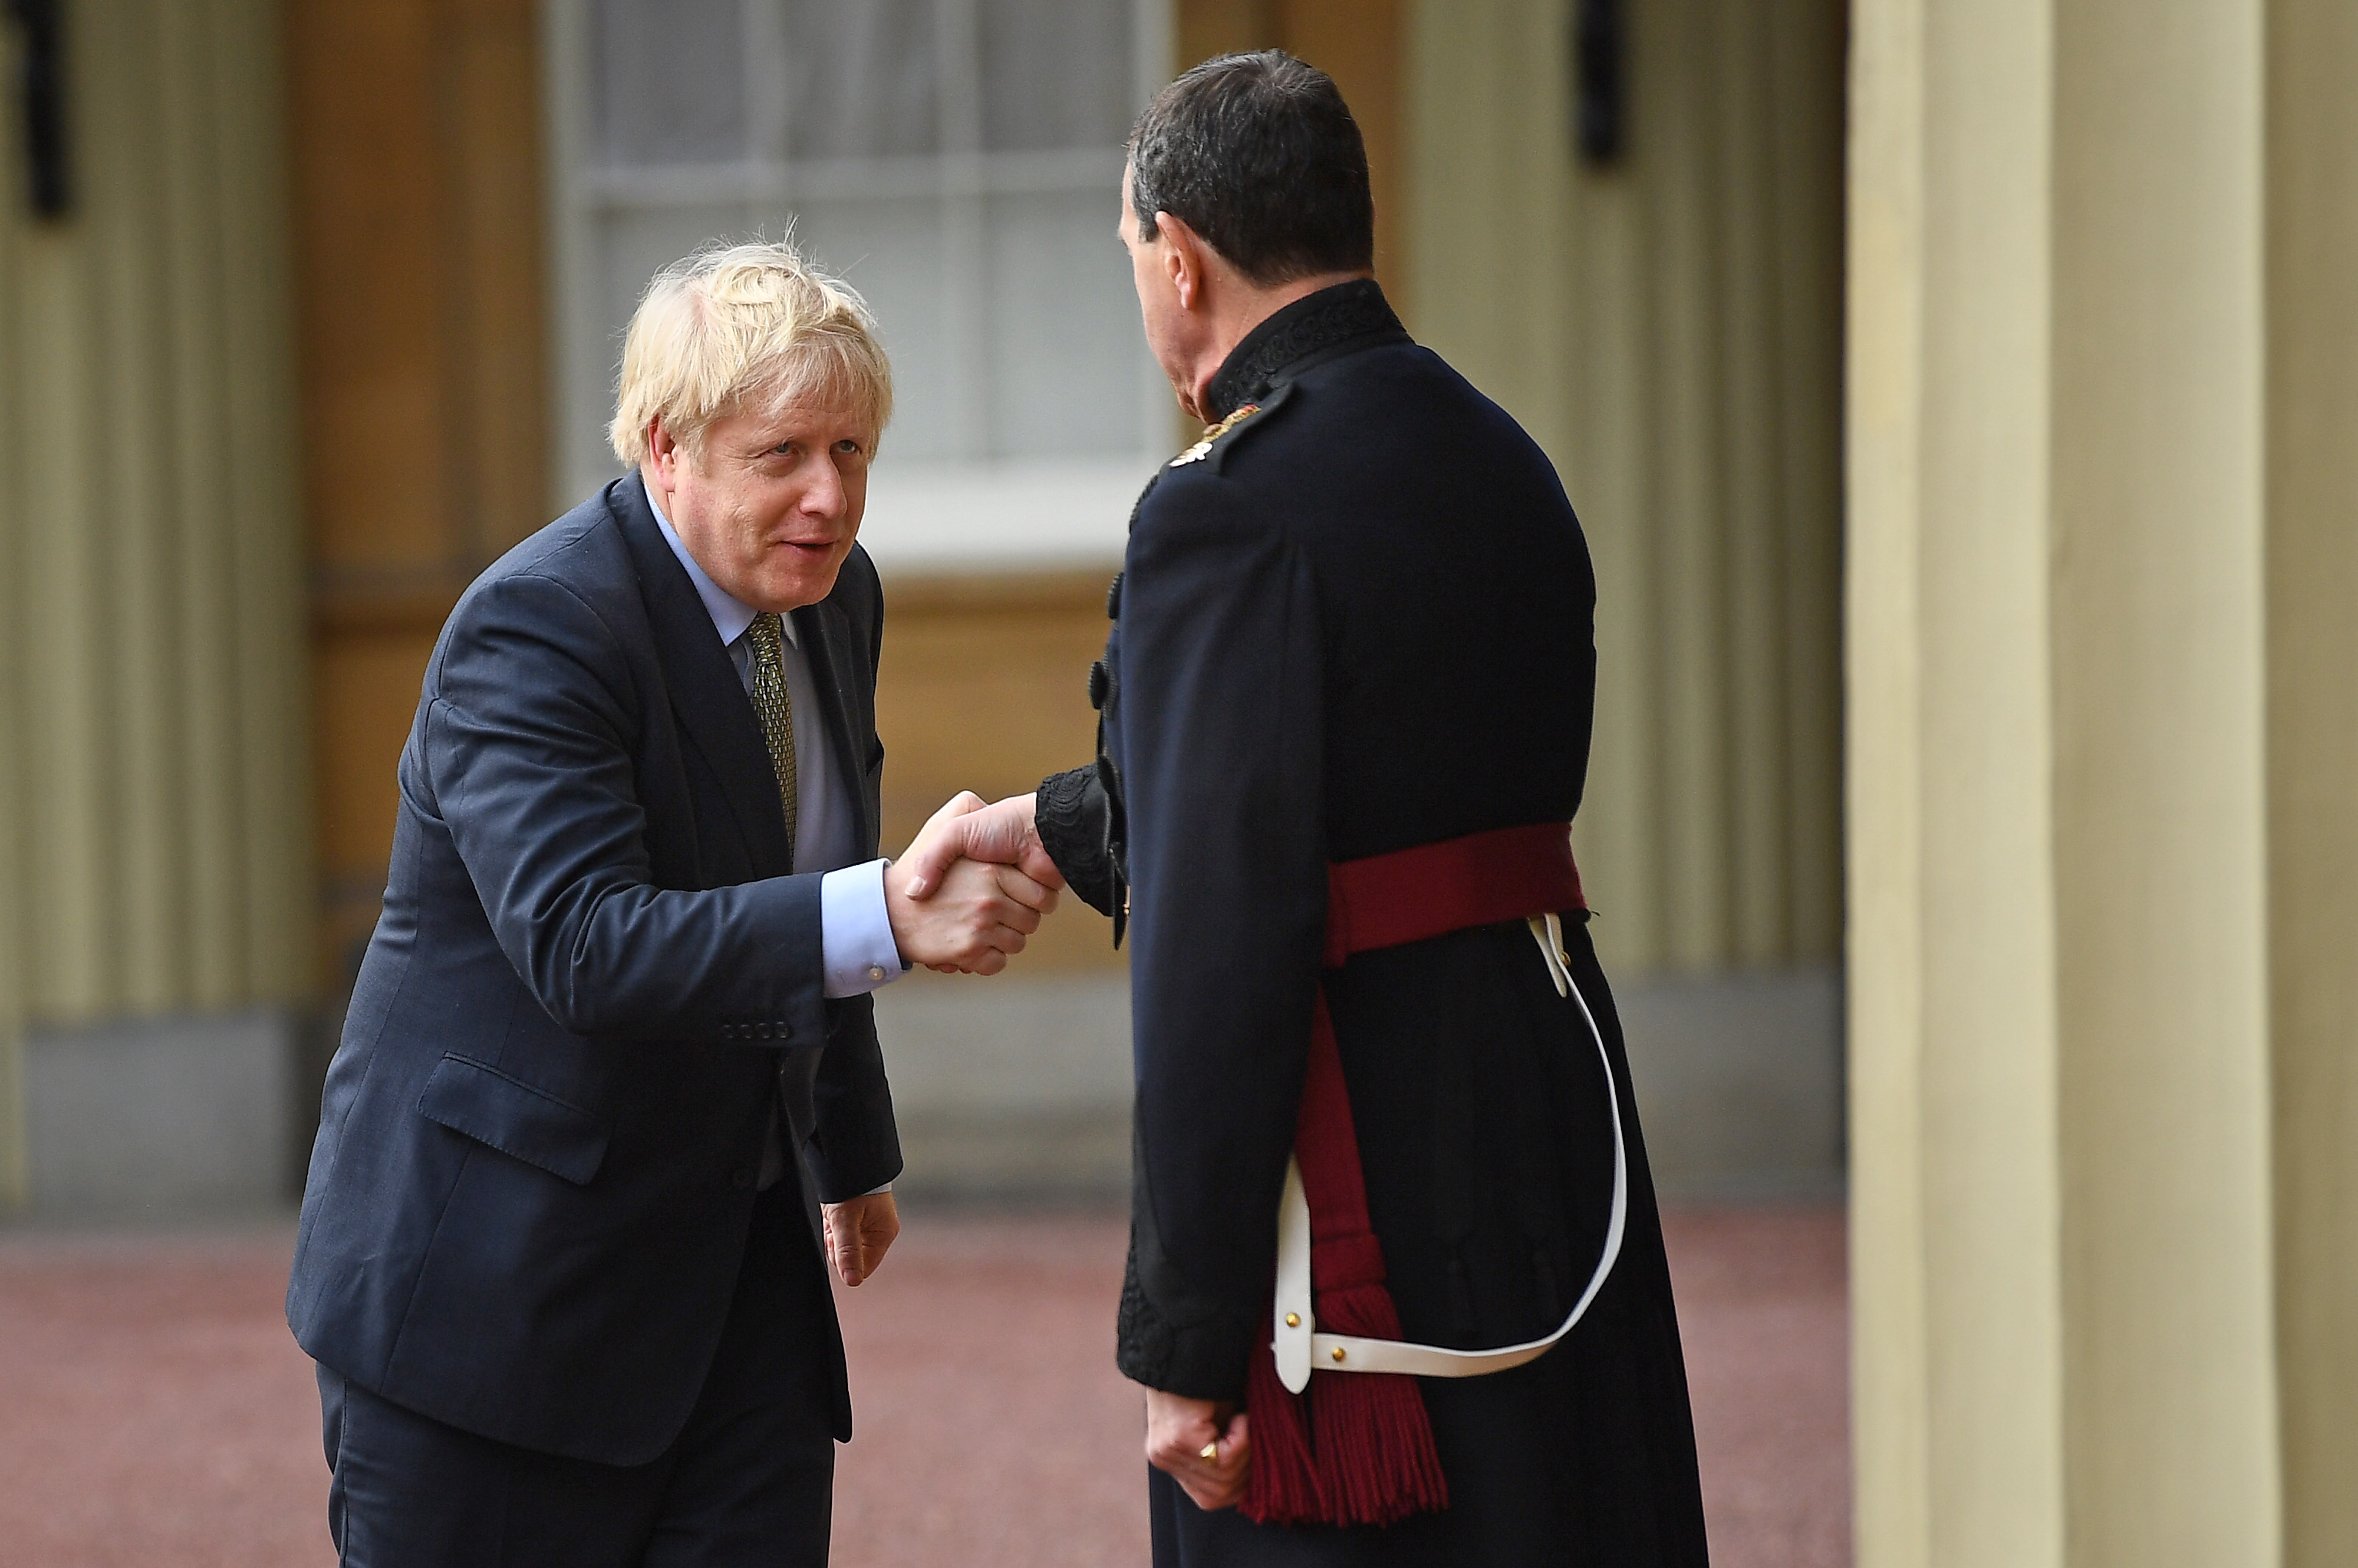 Prime Minister Boris Johnson (left) shakes hands with Queen's Equerry-in-Waiting Lieutenant Colonel Charles Richards as he leaves Buckingham Palace in London after meeting Queen Elizabeth II and accepting her invitation to form a new government after the Conservative Party was returned to power in the General Election with an increased majority.